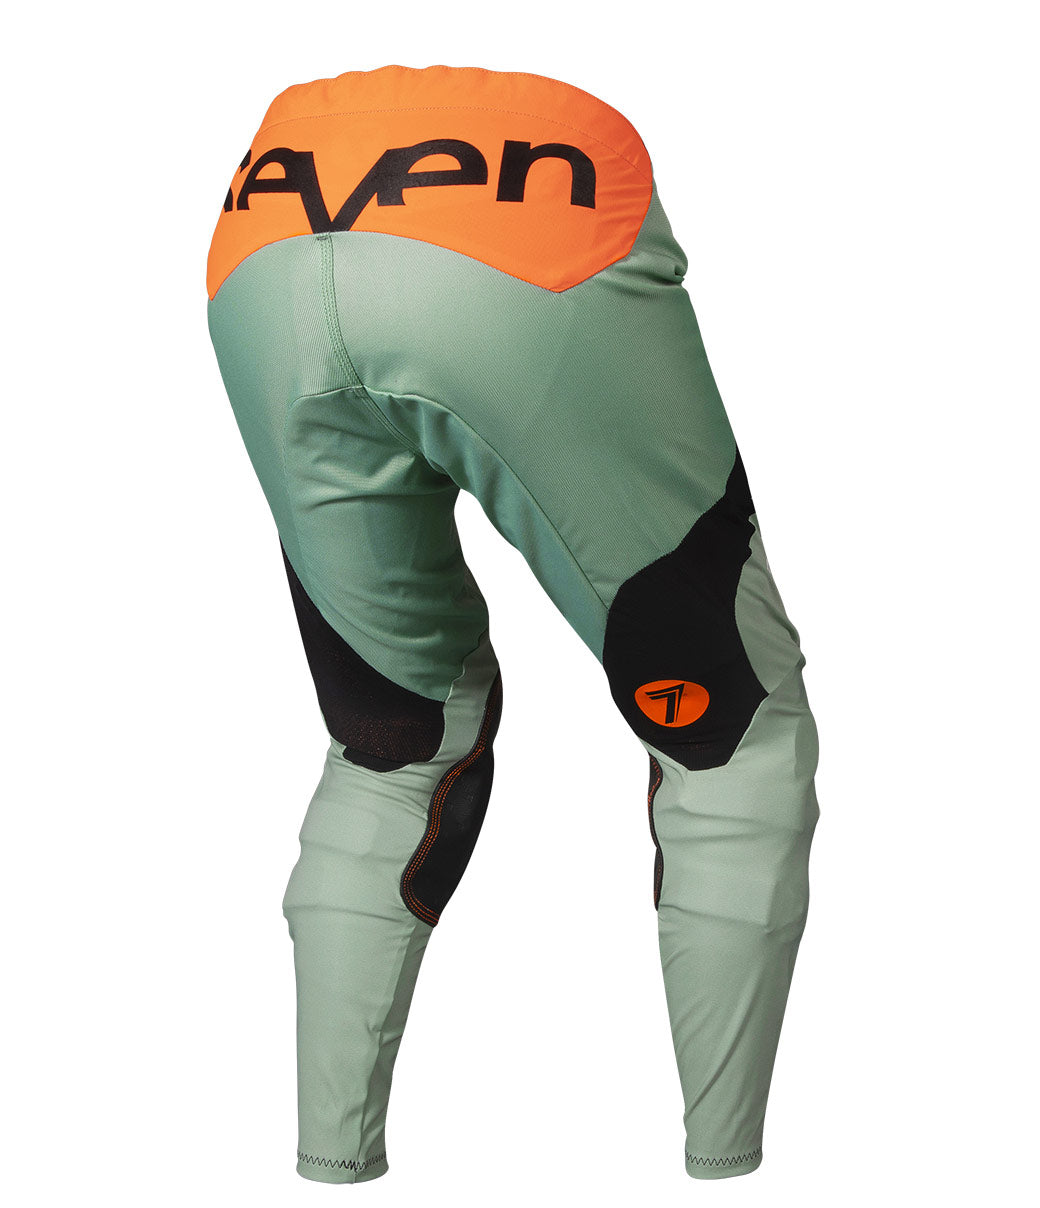 Rival Trooper 2 Pant - Paste